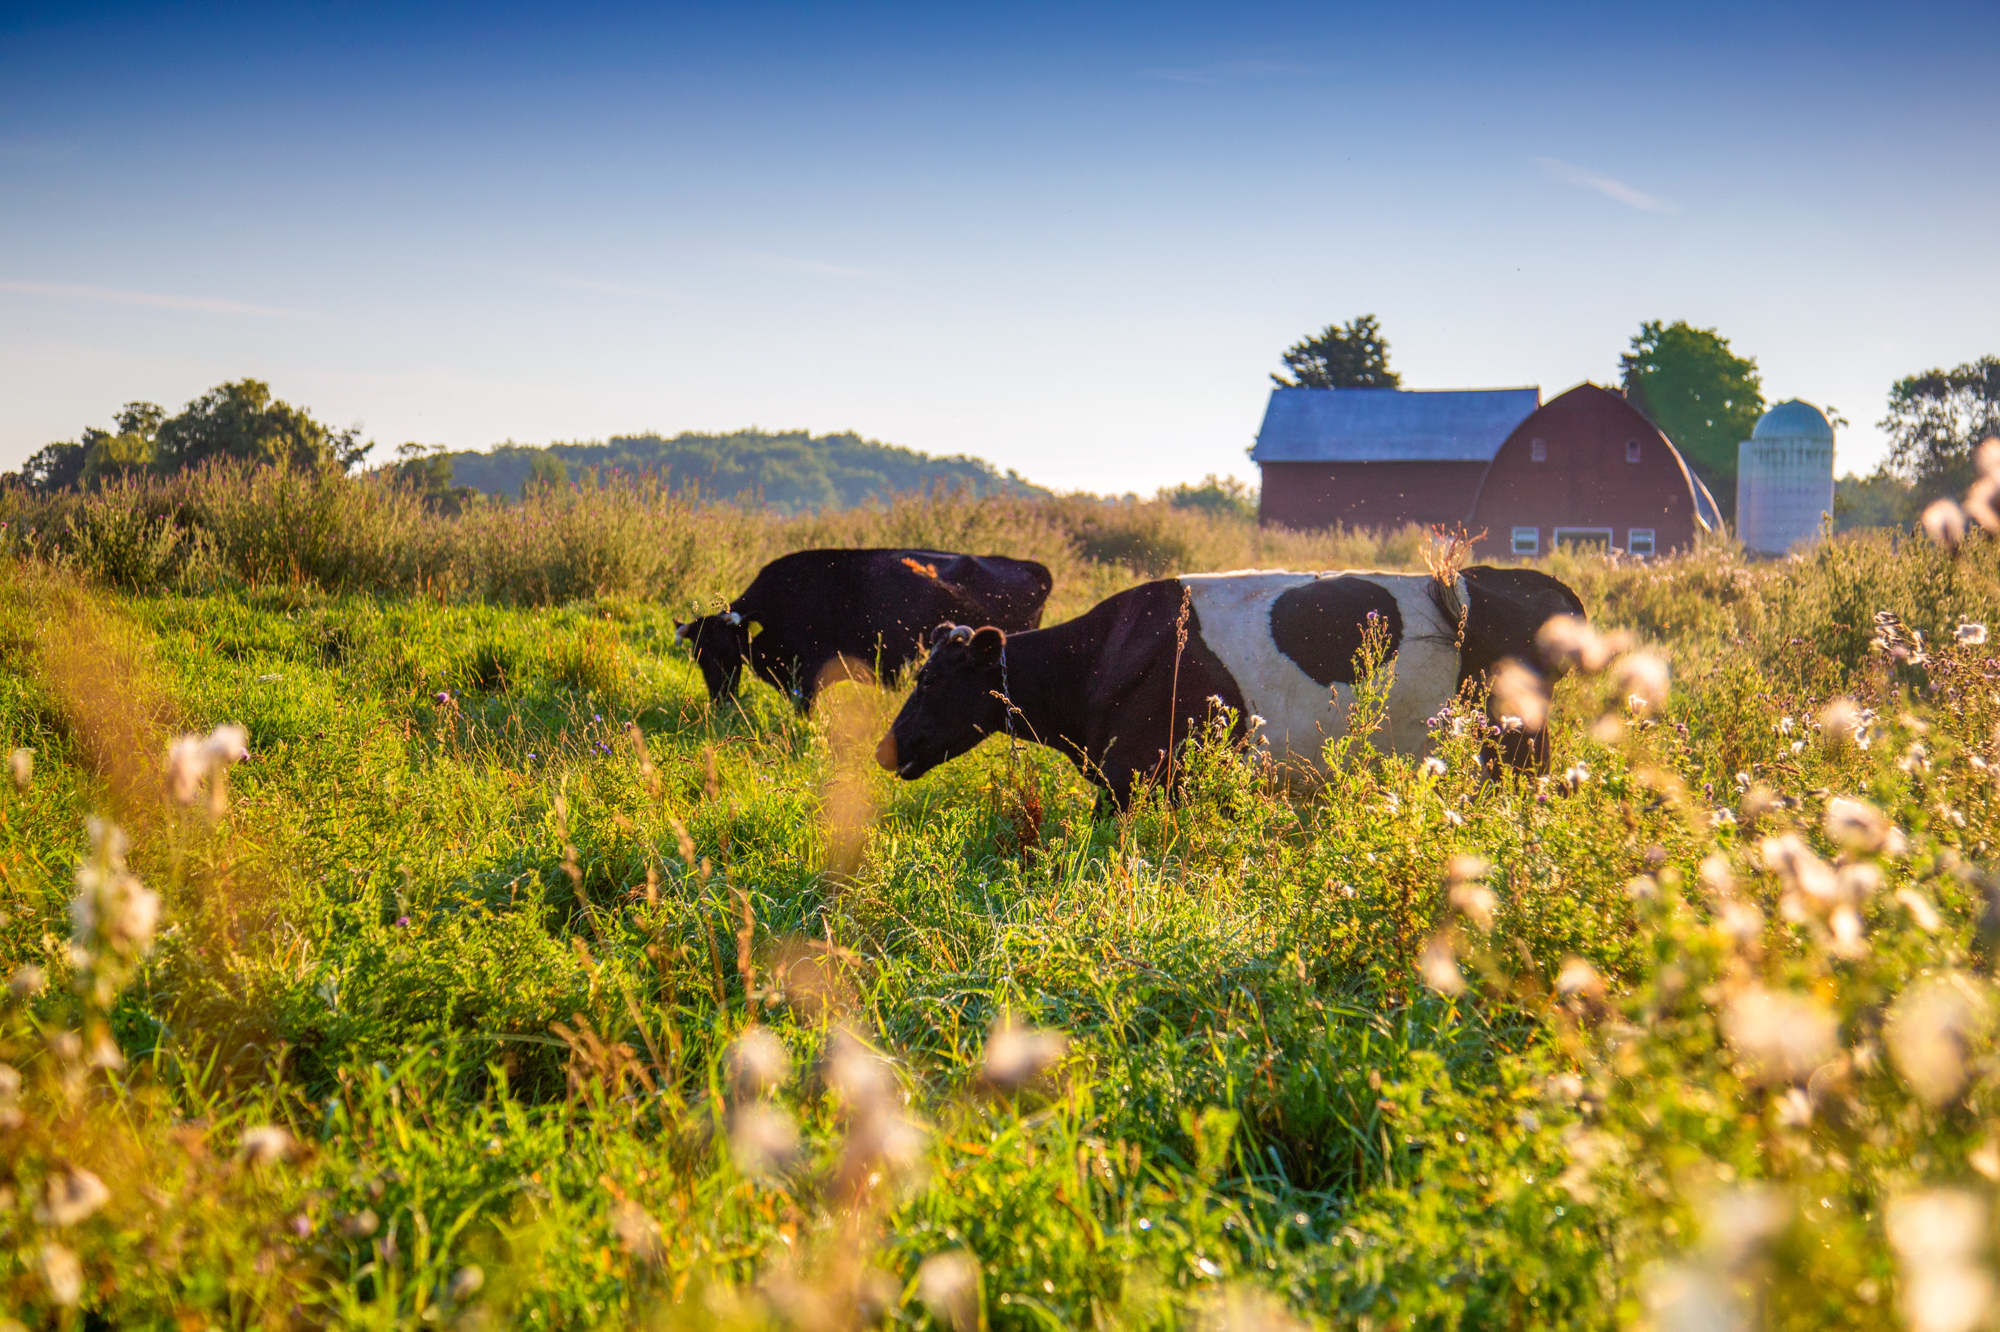 Cows graze at Dharma Lea Farm in Sharon Springs, N.Y.   Advocates of grass-grazing cattle say it's better for the environment and the animals. But there's another upside: Grass-fed meat and dairy fetch a premium that can help small farms stay viable.